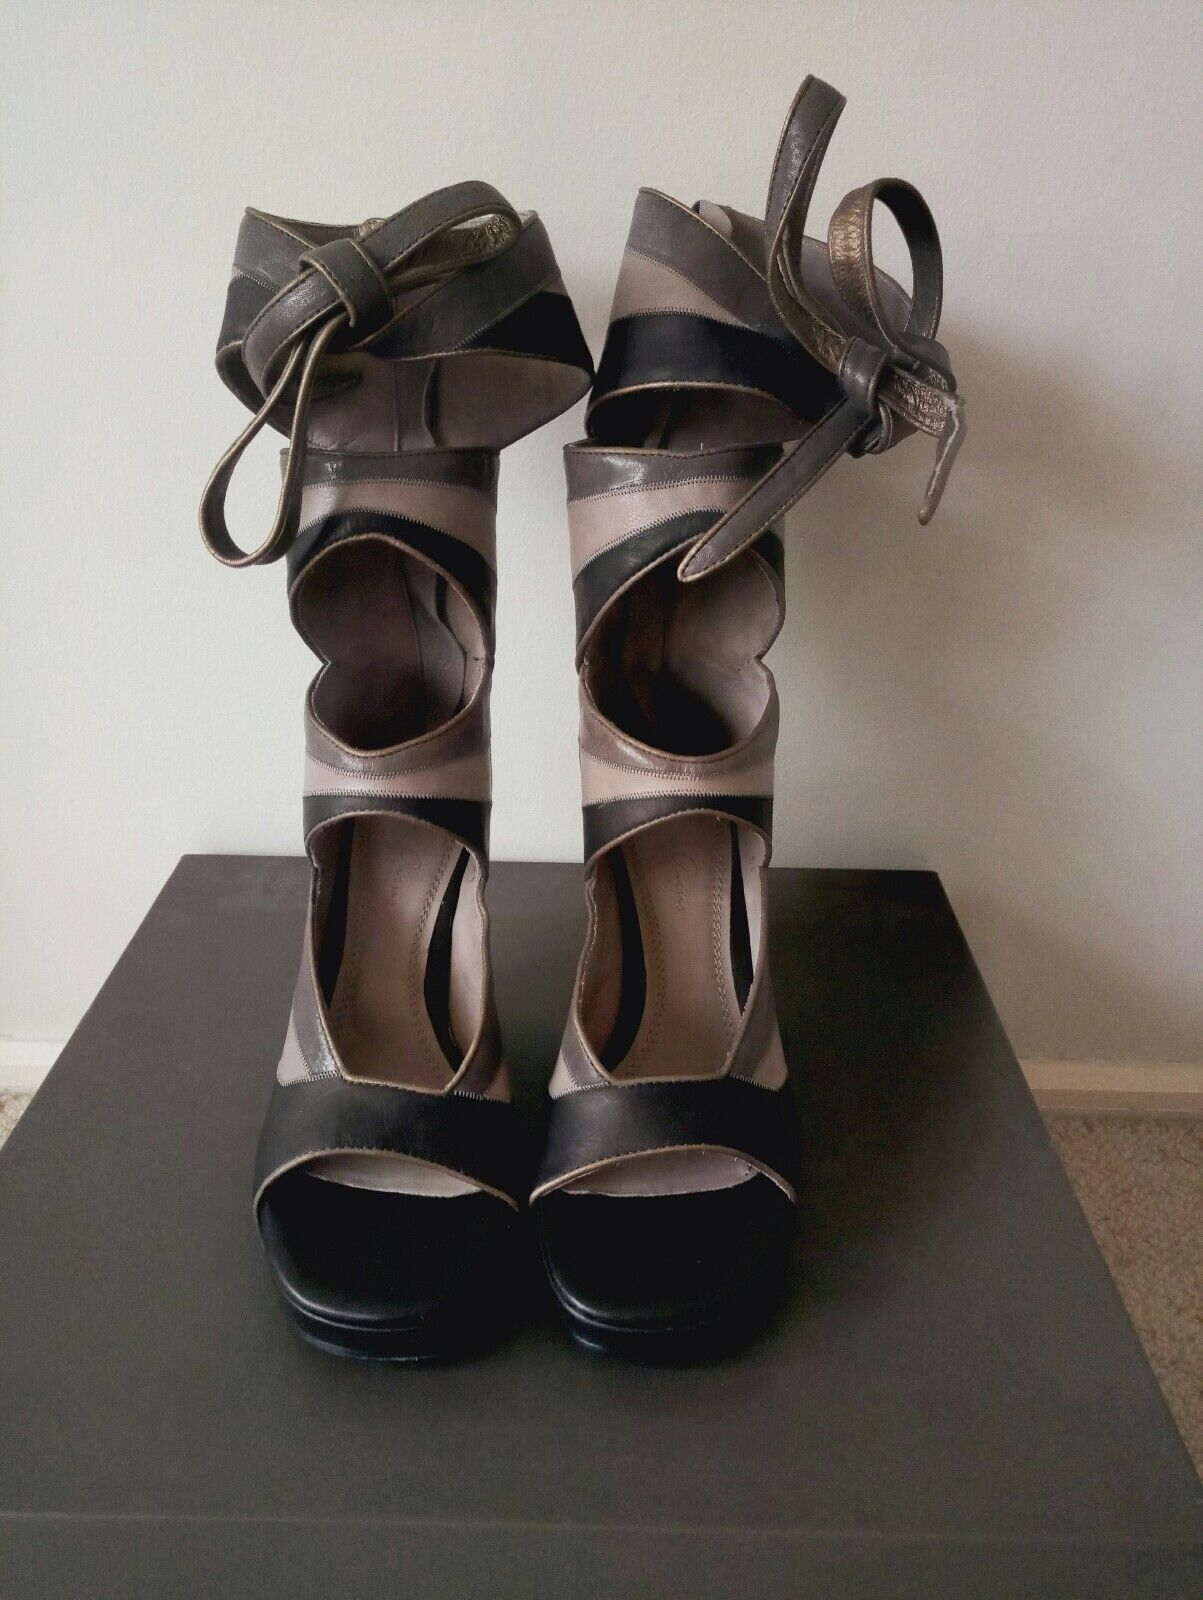 Rick owens cutout leather wedge boots New New New in box IT36.5 16f46d